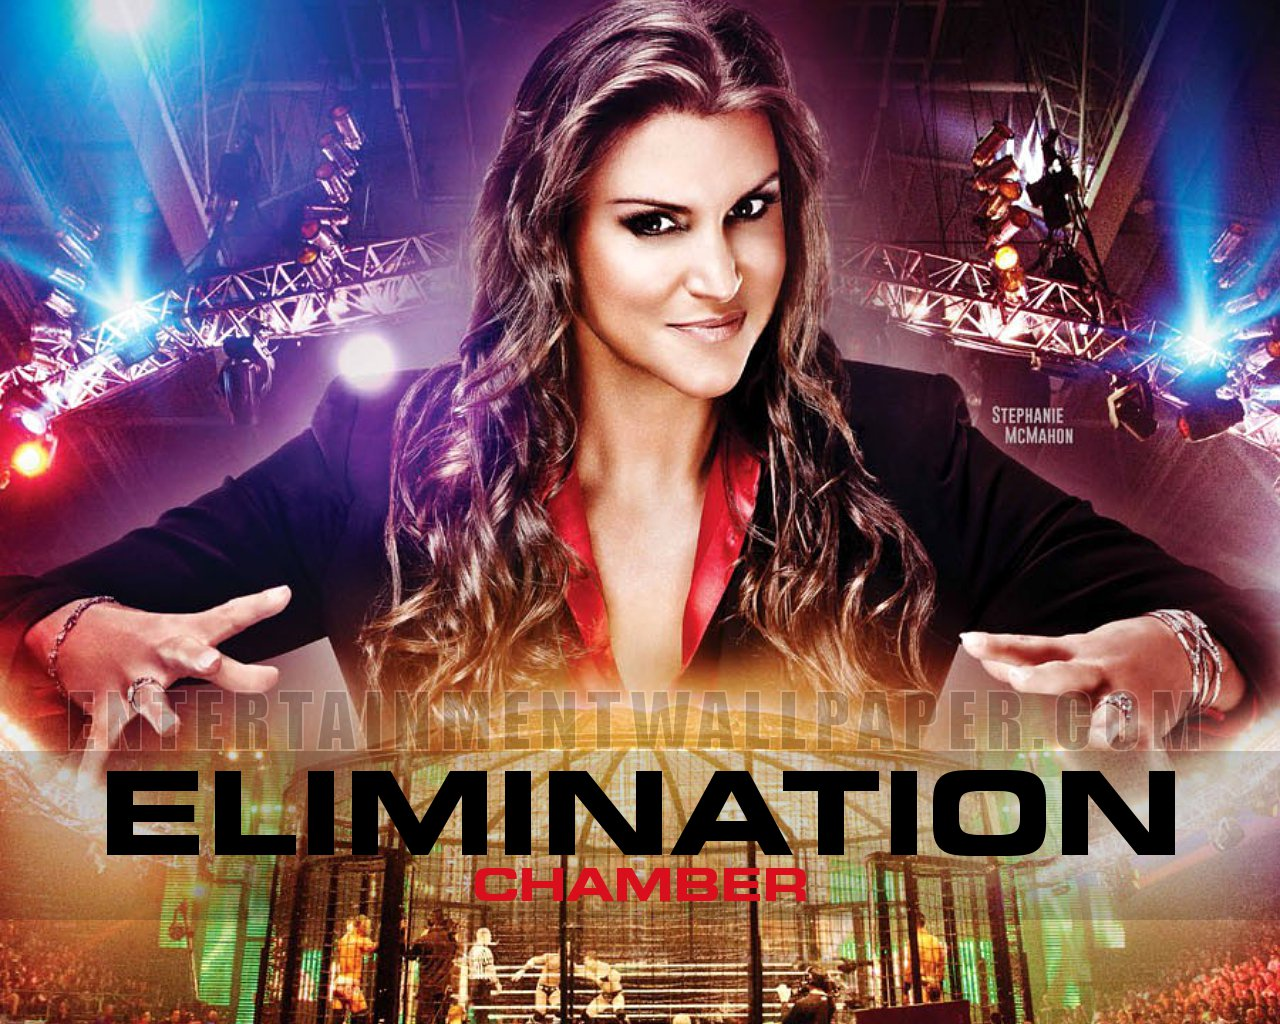 Elimination Chamber Wallpaper   20043814 1280x1024 1280x1024